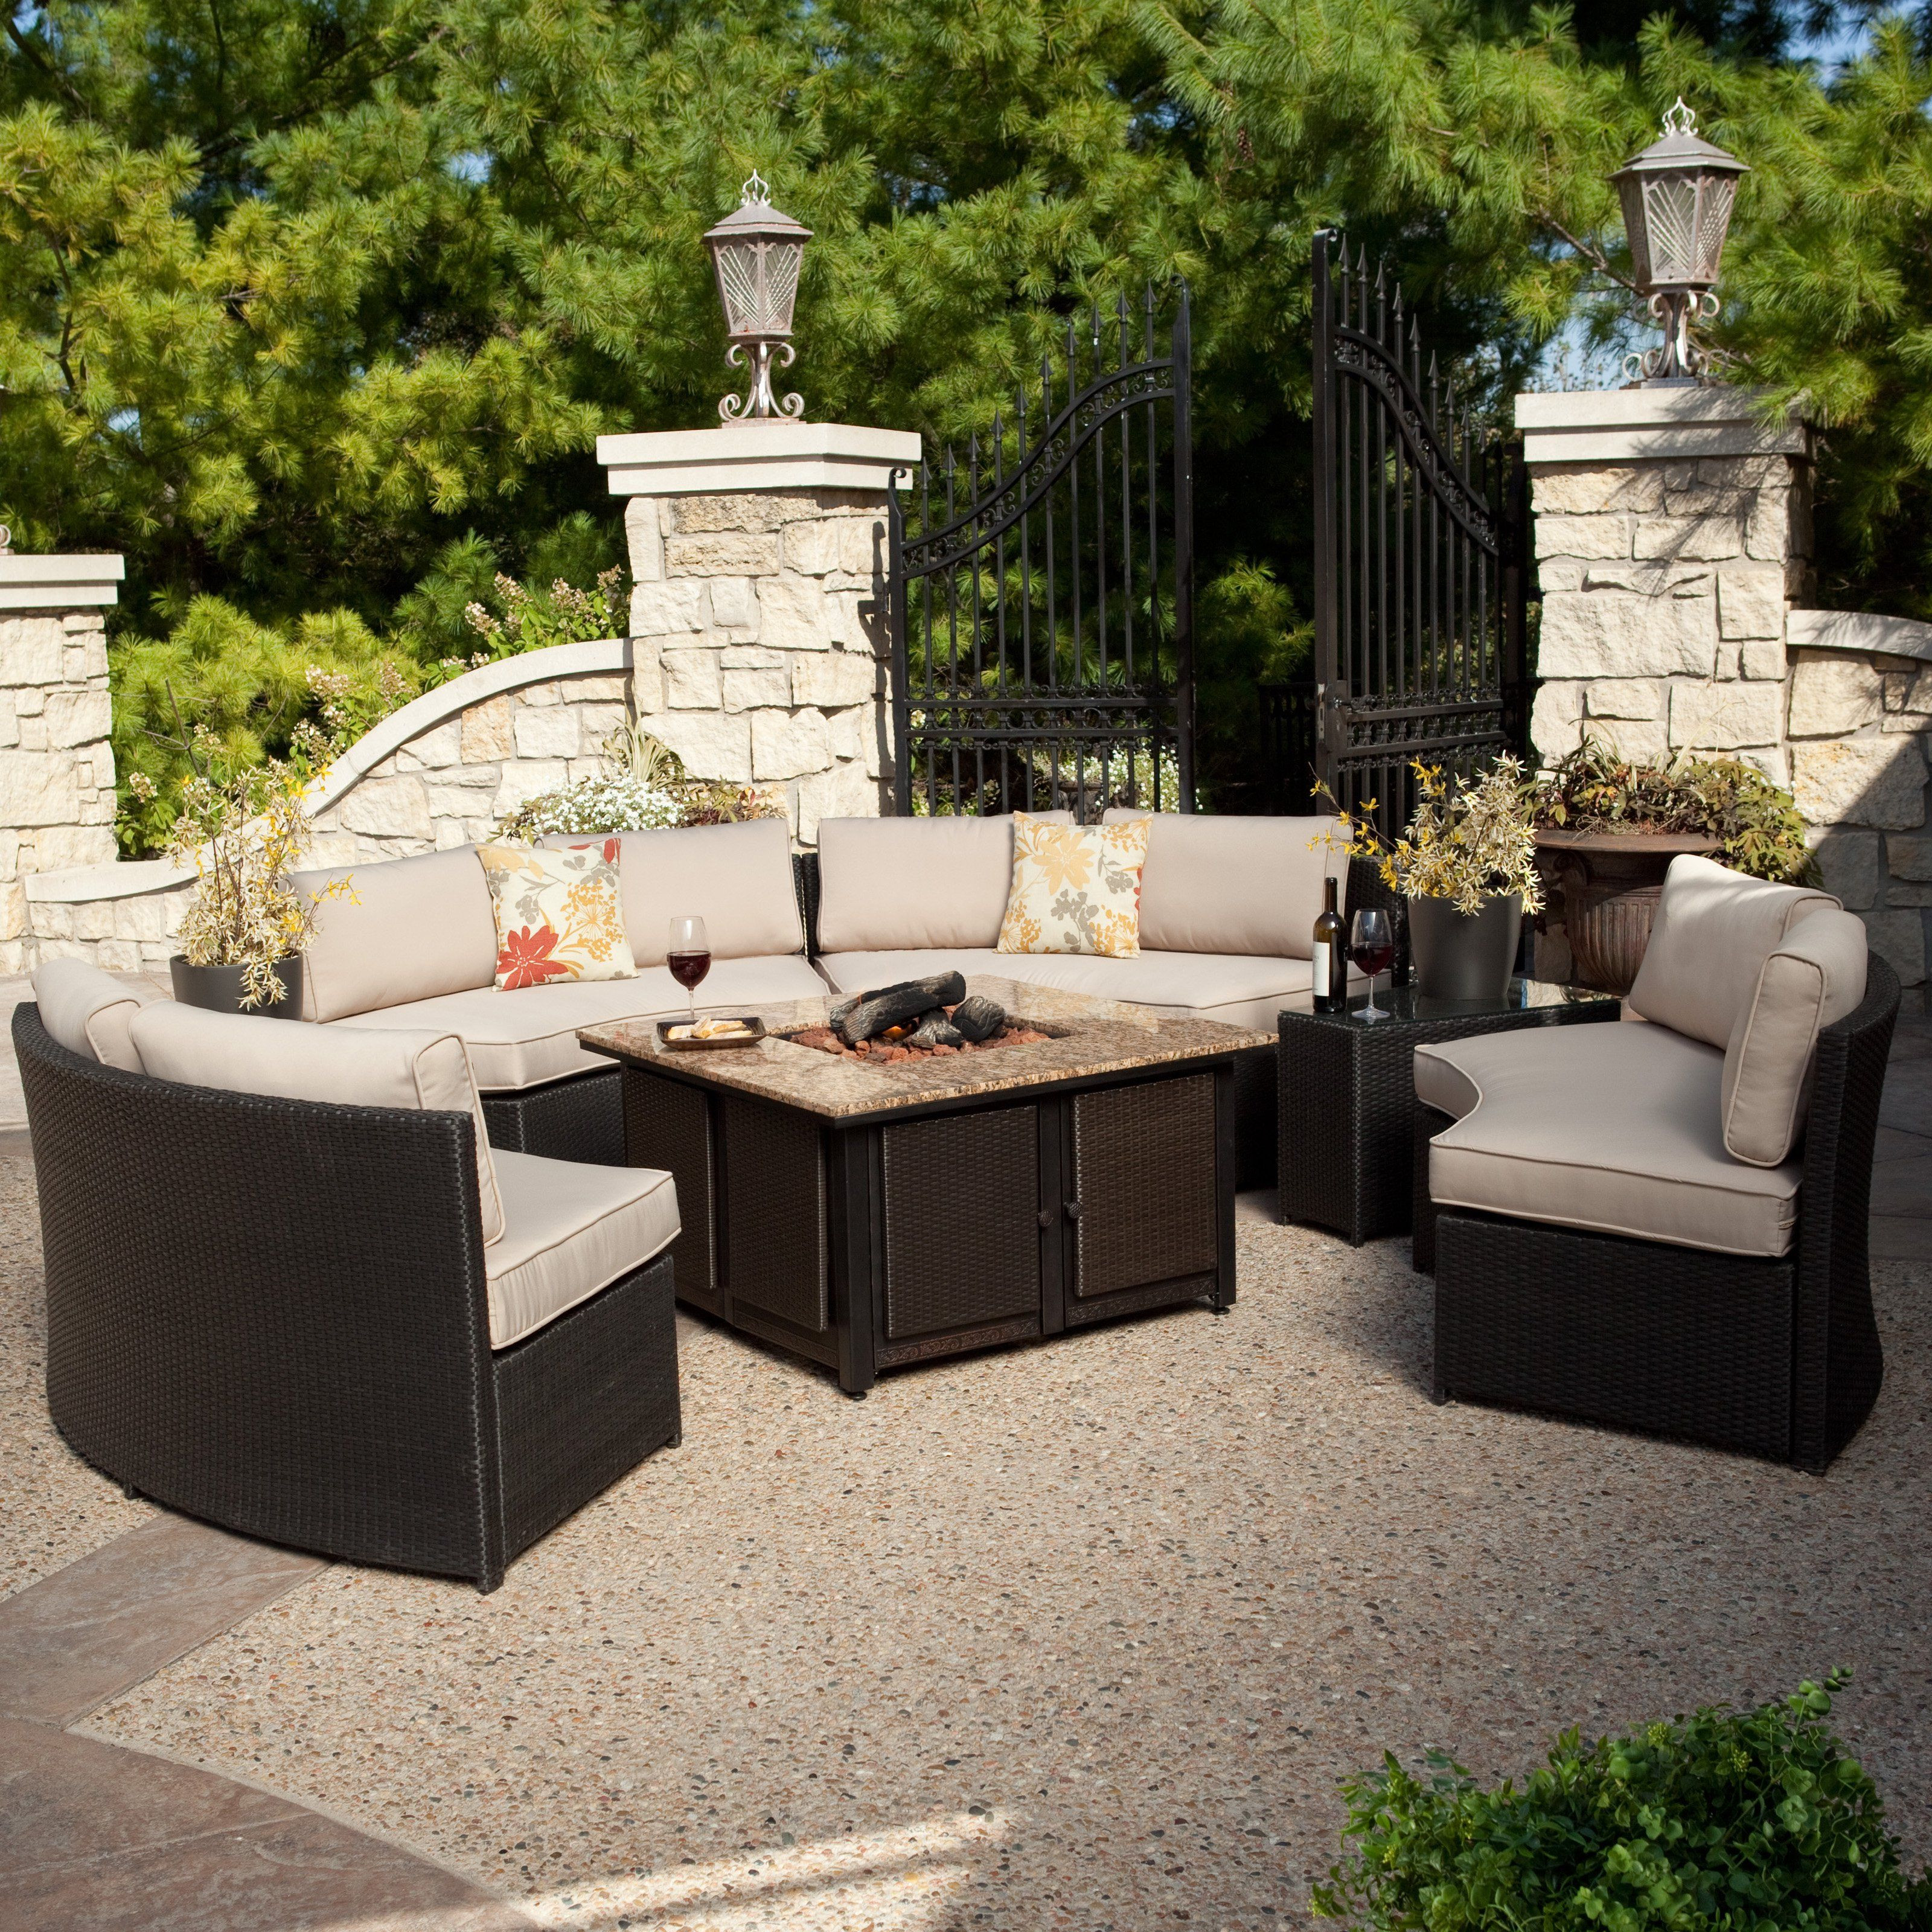 Best ideas about Outdoor Fire Pit Sets . Save or Pin Have to have it Belham Living Meridian All Weather Wicker Now.